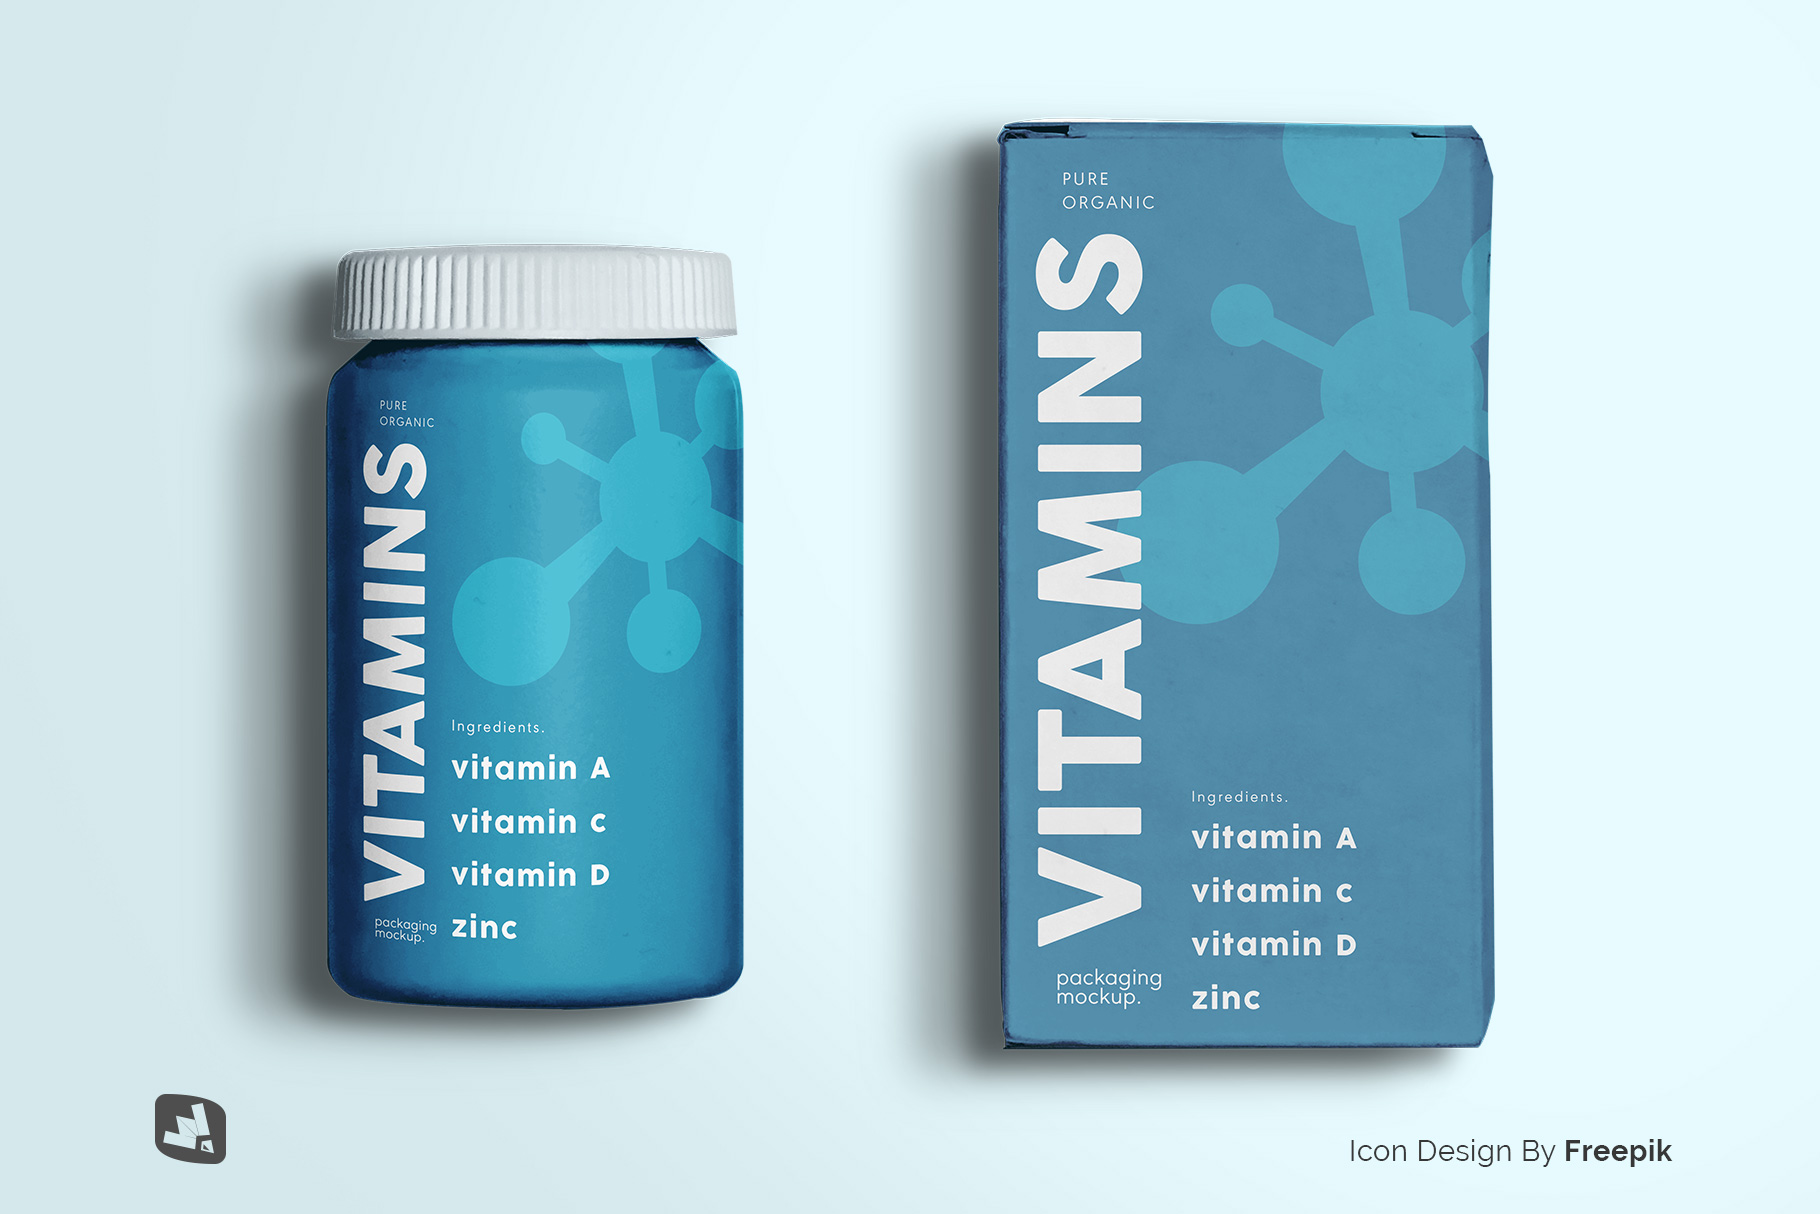 designer's credit of the top view pill bottle packaging mockup